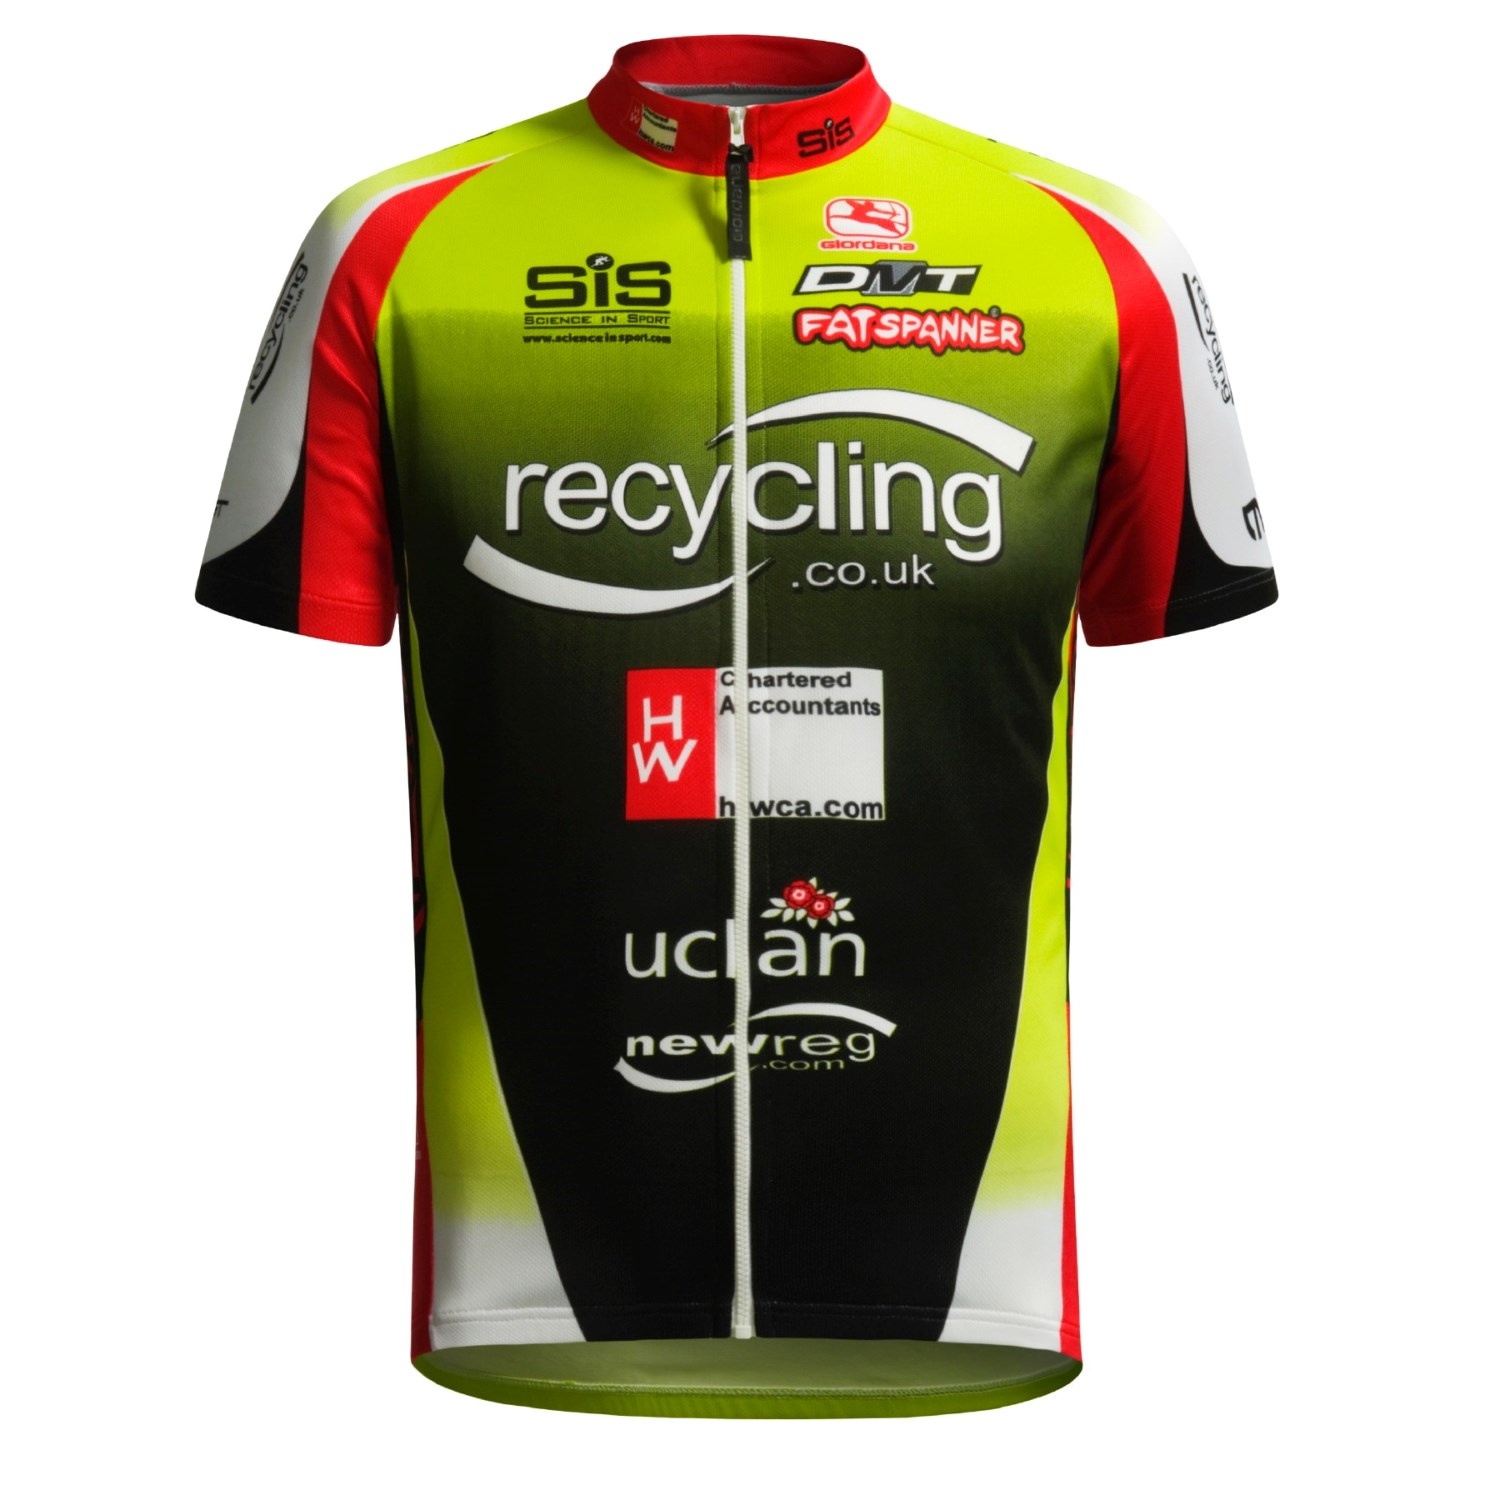 Giordana Team Cycling Jersey (For Men) 57984 60 on PopScreen 0d62ce894